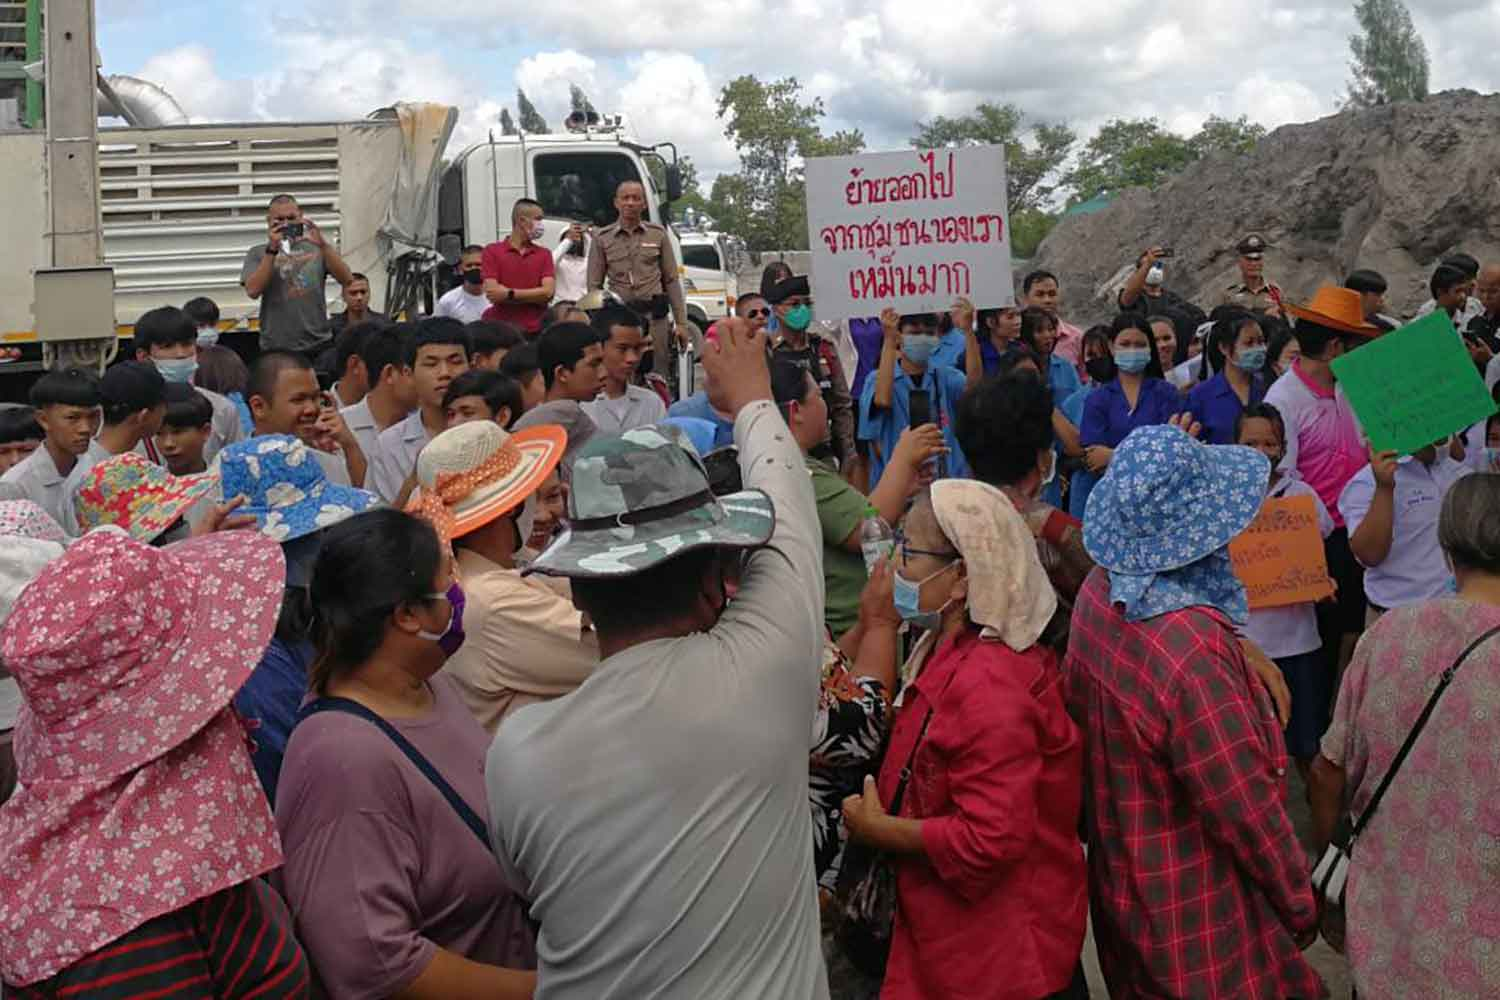 About 300 villagers, including sudents, protest in front of an asphalt factory in Udon Thani's Kumphawapi district on Tuesday, accusing it of emitting a foul smell and generating dust. (Photo: Yuttapong Kumnodnae)